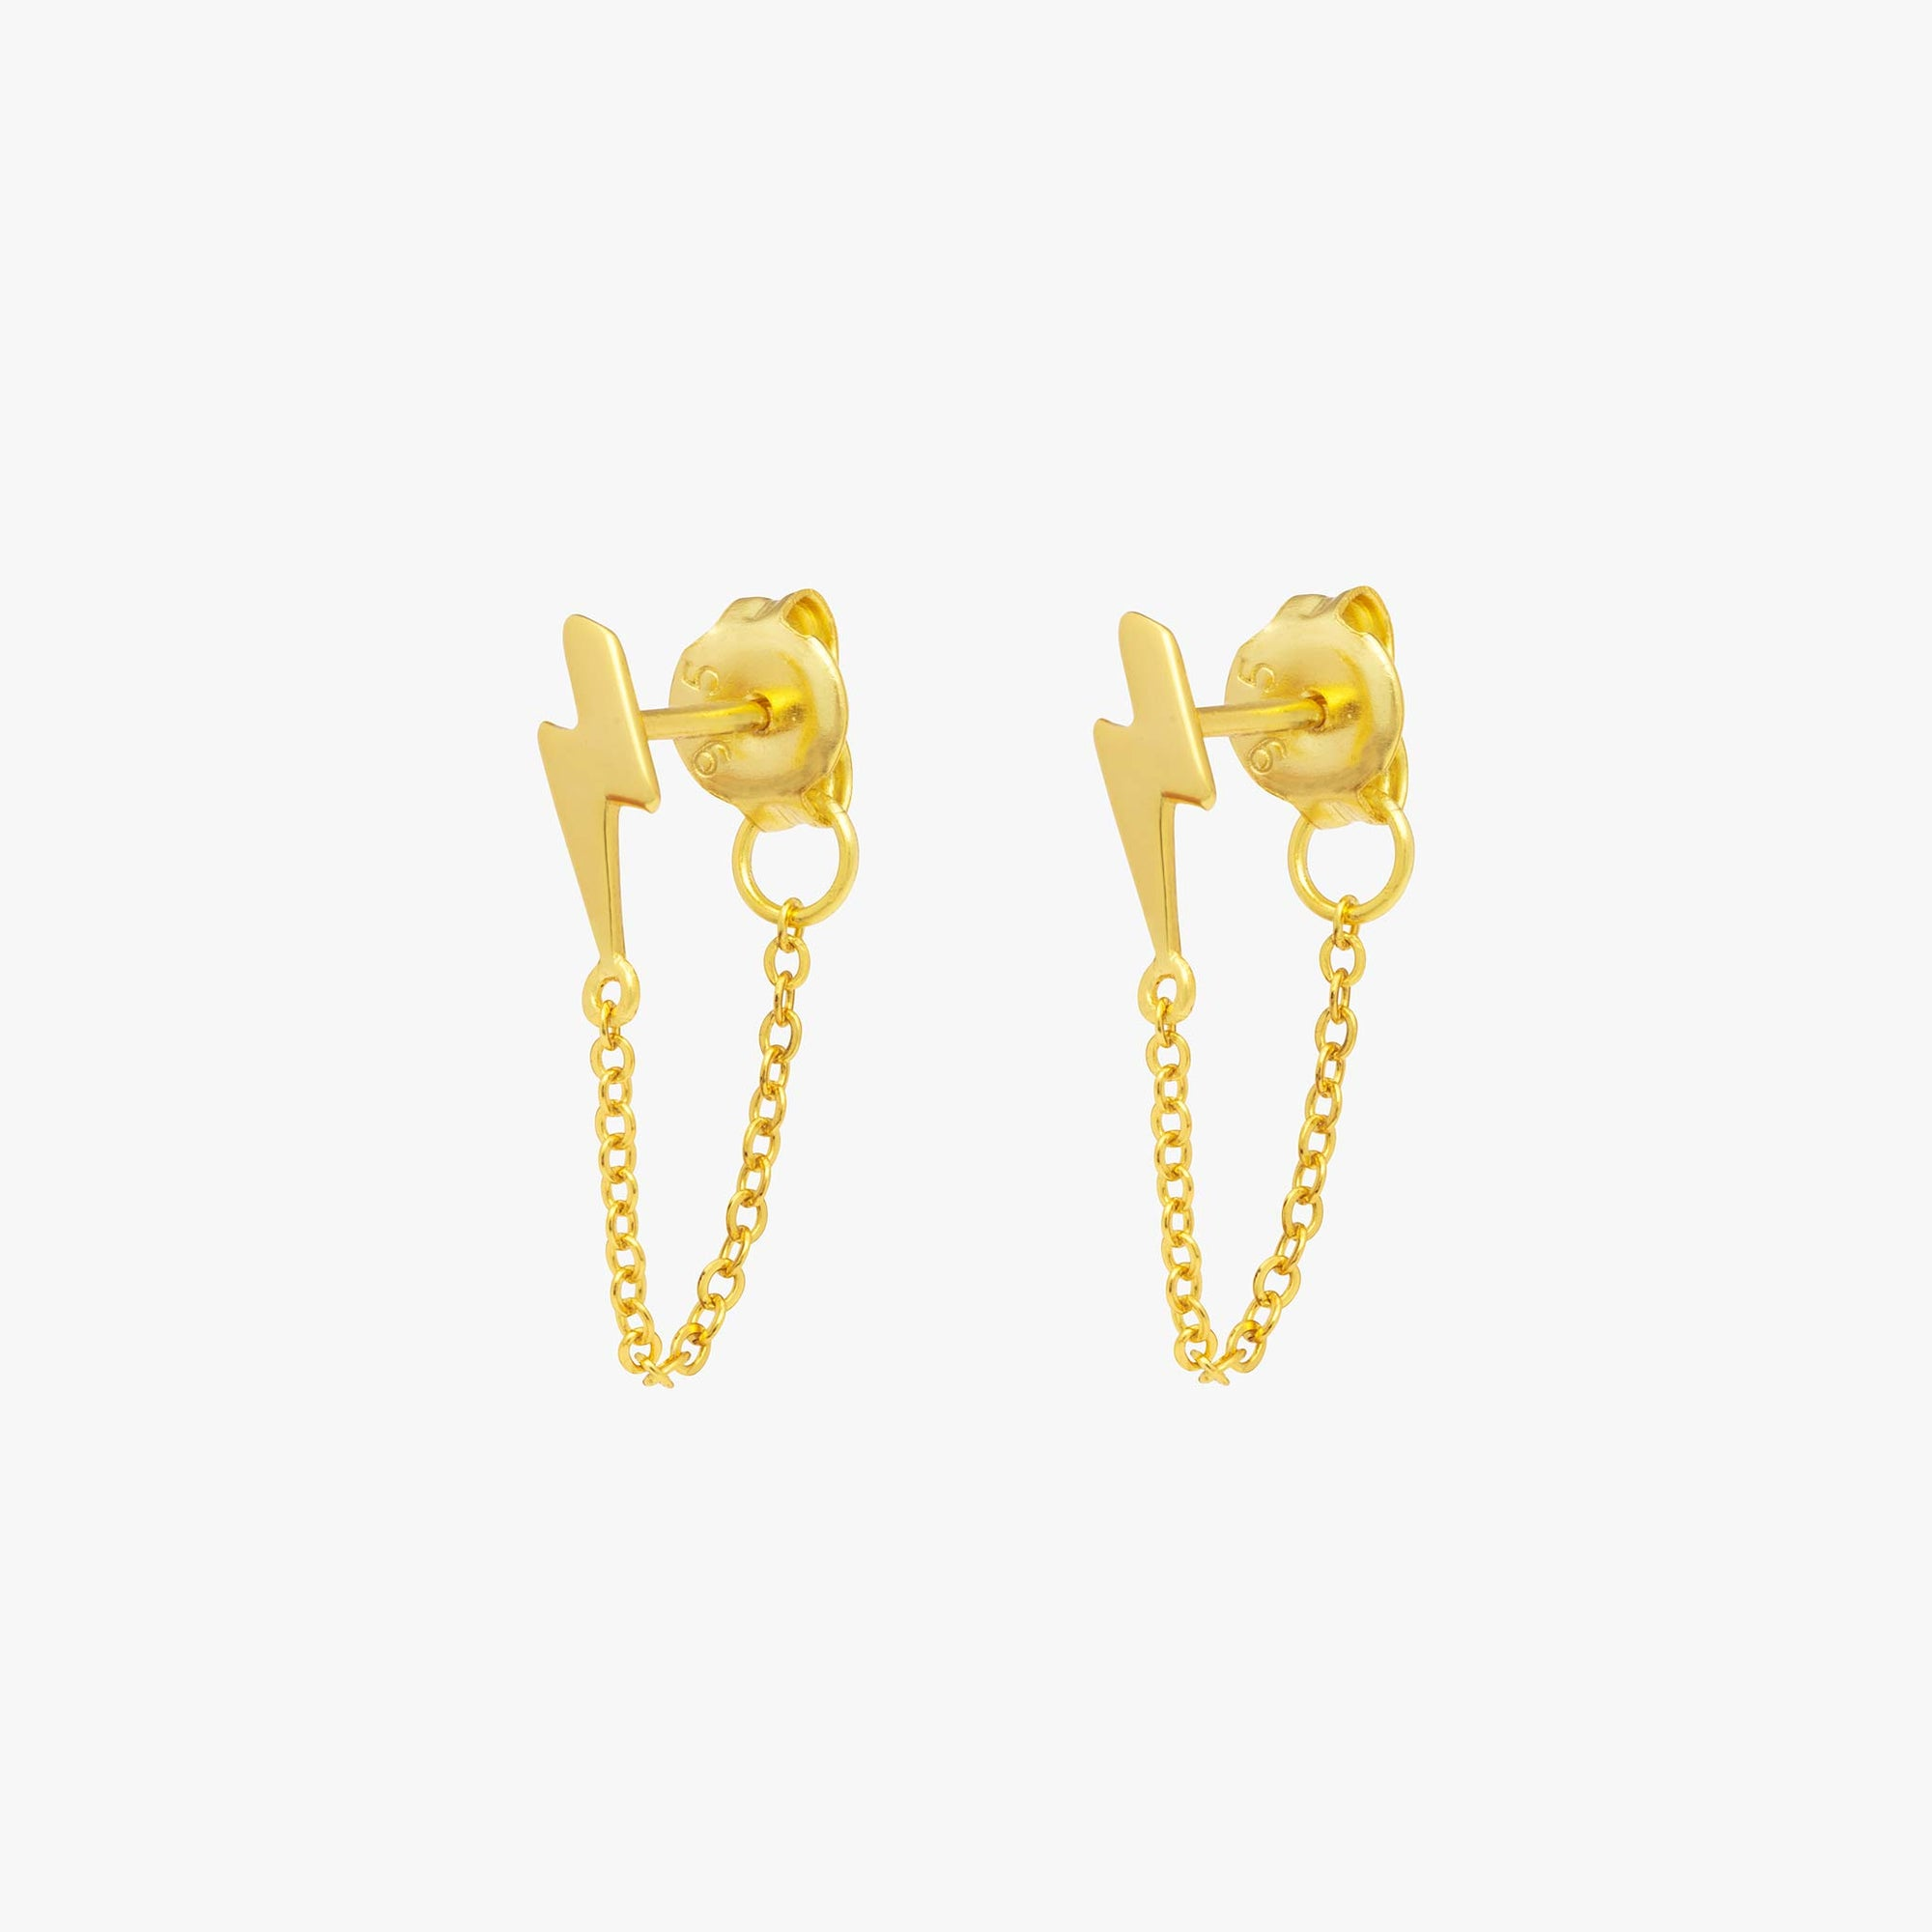 Lightning bolt stud with a chain dangle that connects to the back of the stud. [pair] color:gold